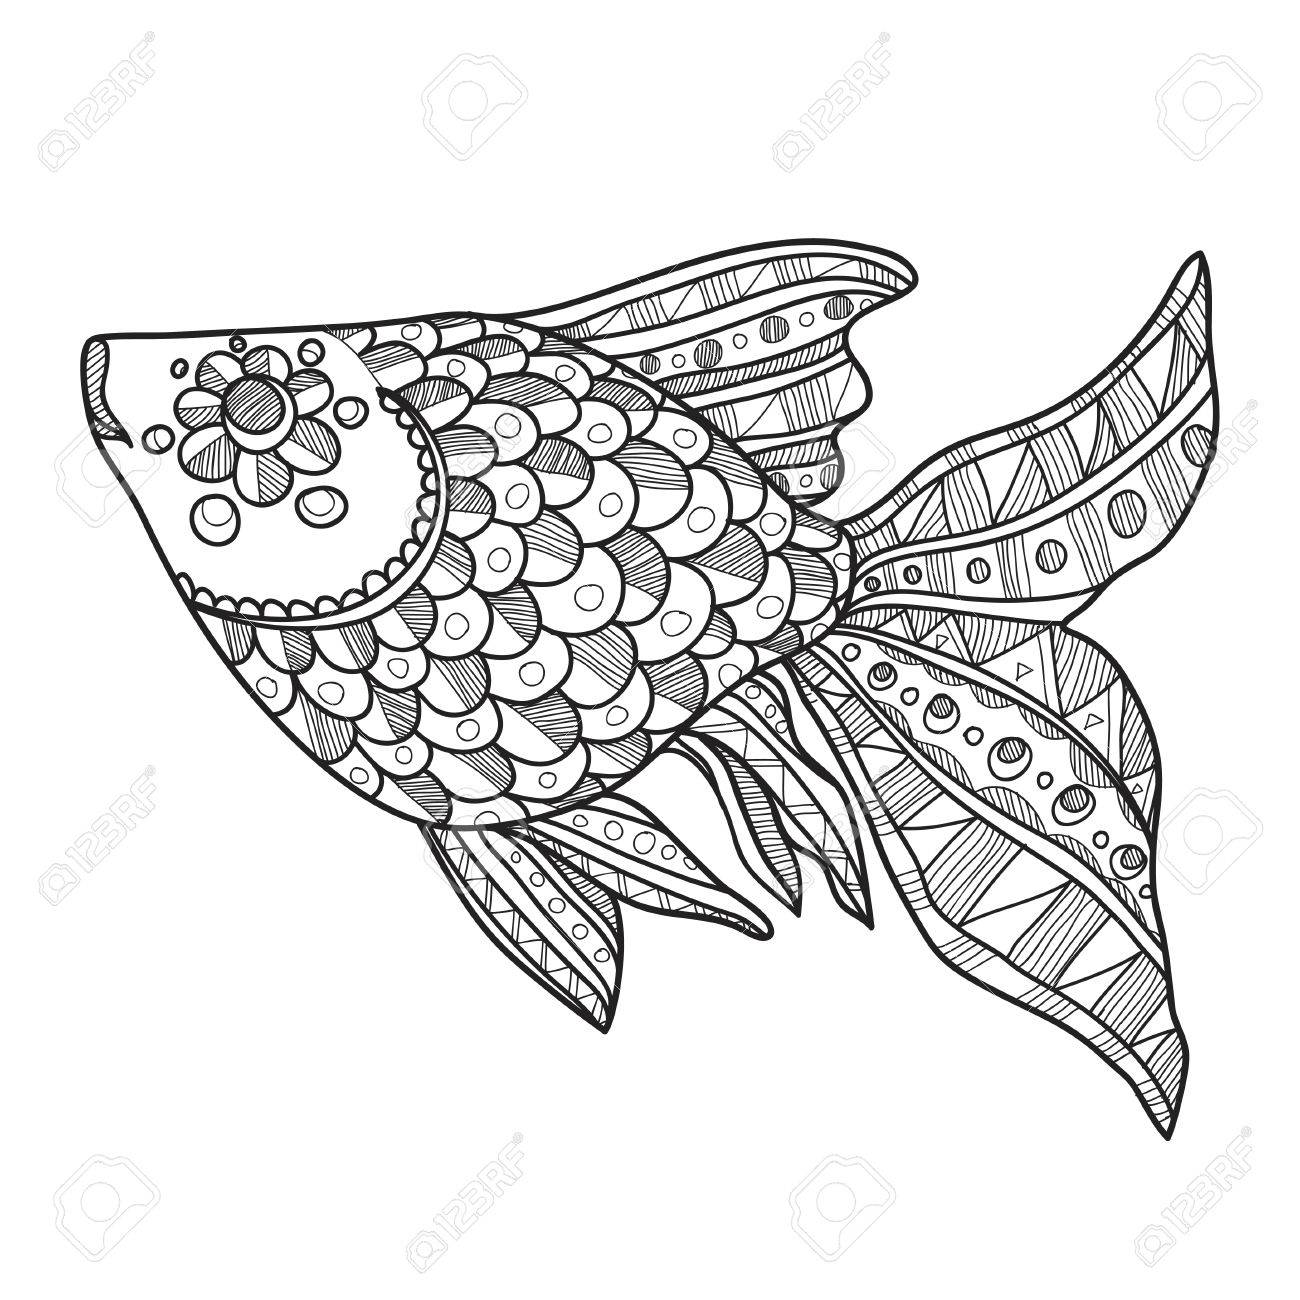 Composition with cute abstract fish ornamented with lines and circles hand drawn abstract fish